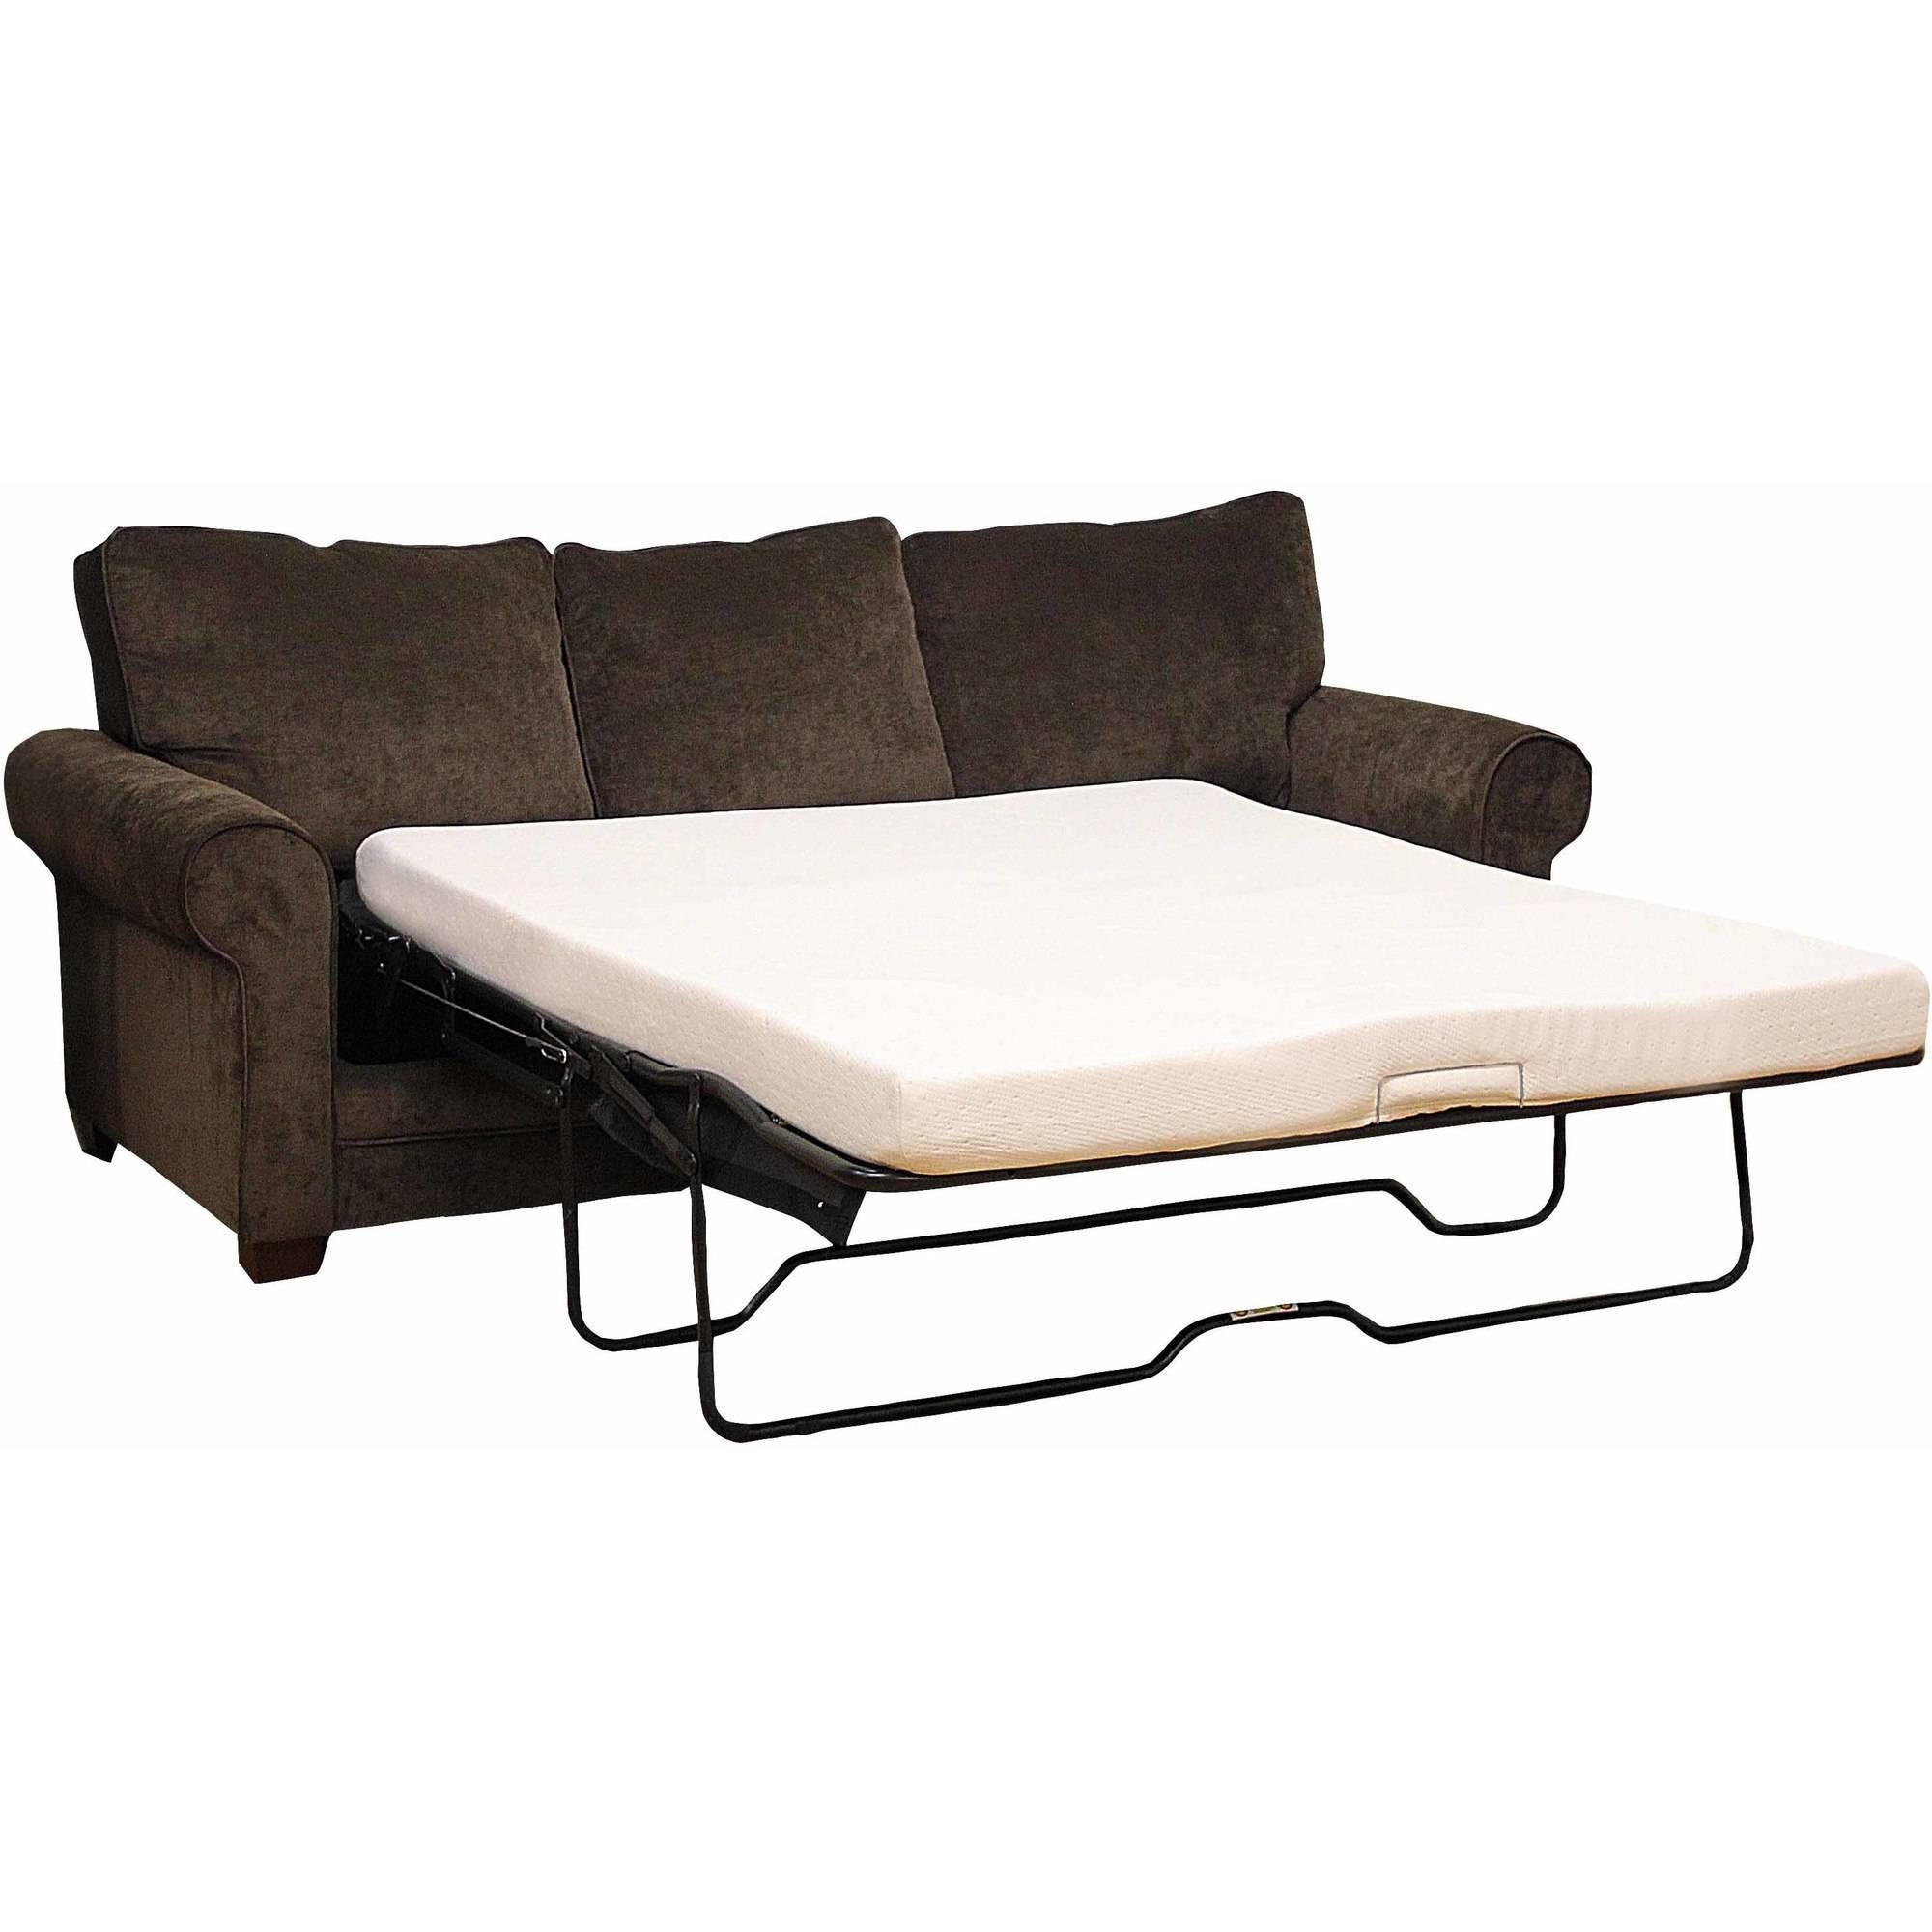 "Modern Sleep Memory Foam 4.5"" Sofa Bed Mattress, Multiple Sizes with regard to Mini Sofa Beds (Image 19 of 30)"